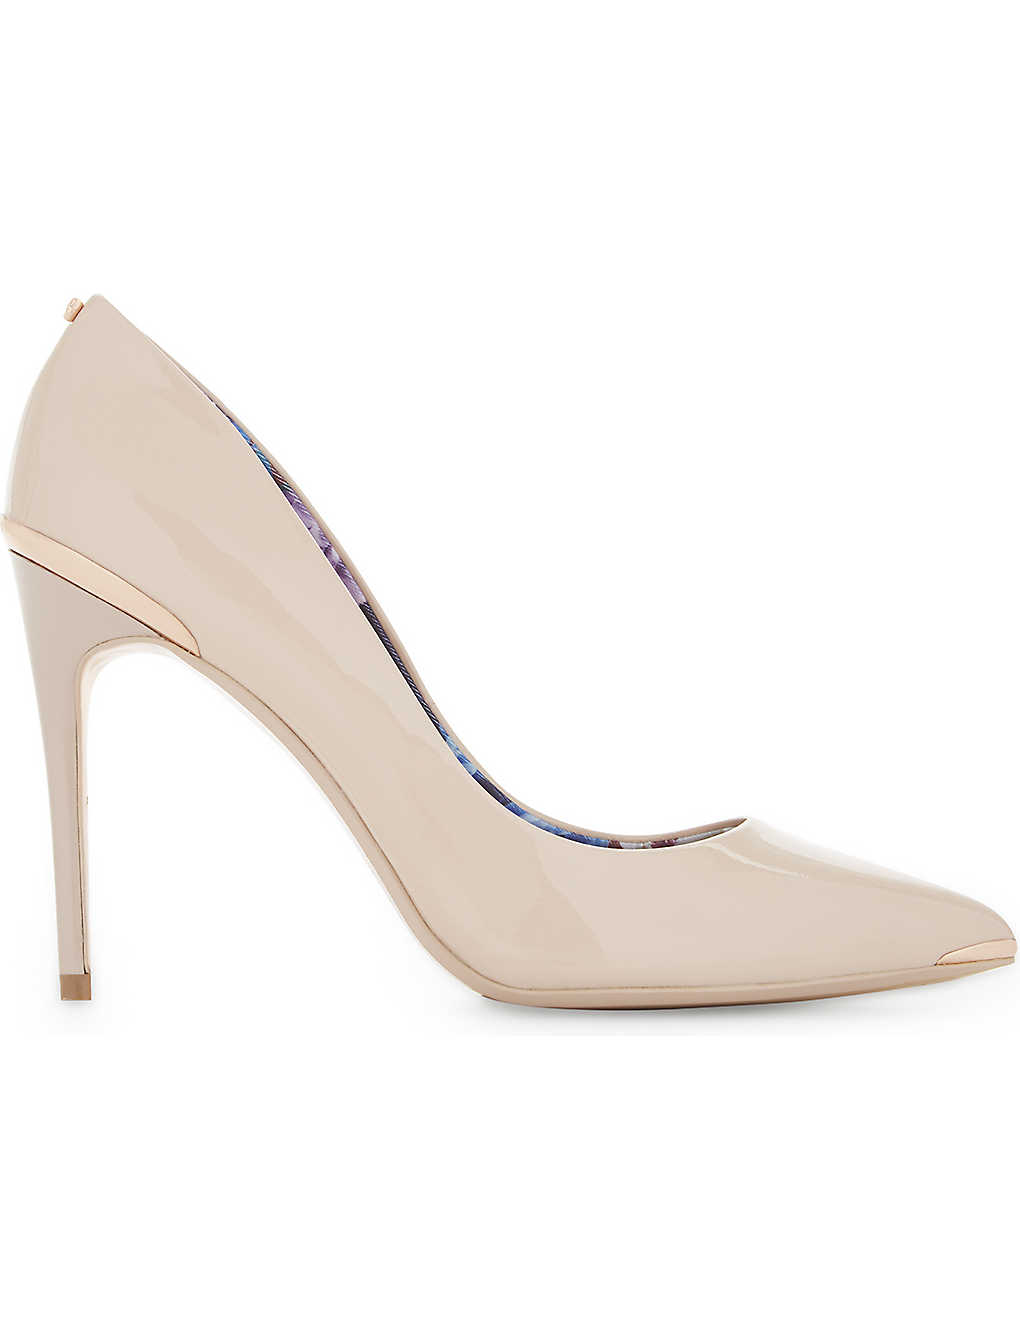 cafc231a90b TED BAKER - Kaawa patent leather courts | Selfridges.com